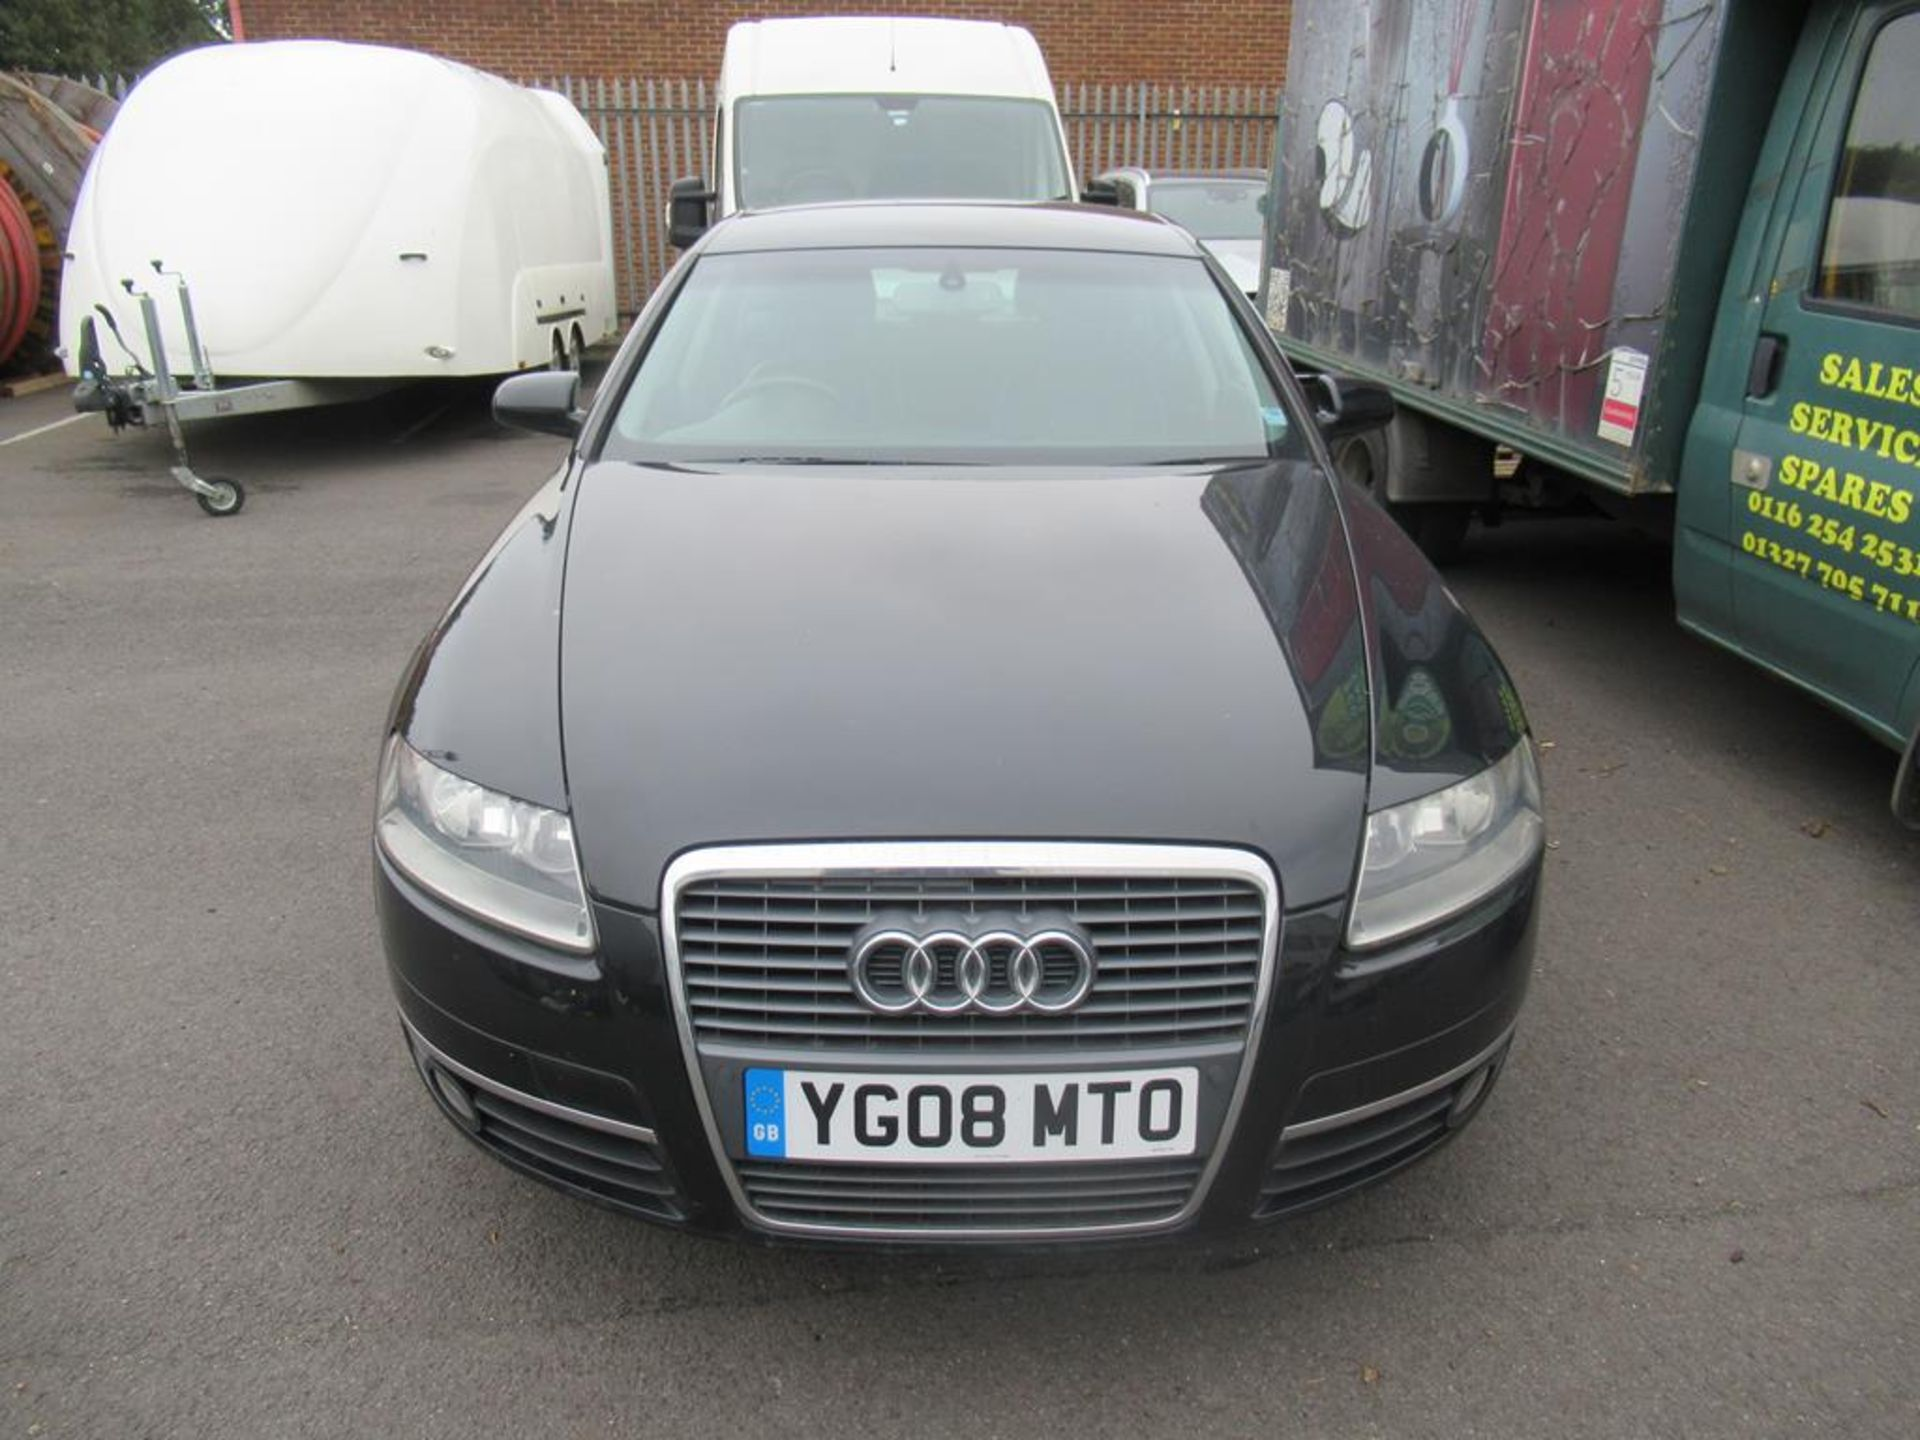 Audi A6 2.7TDI automatic with SatNav and bluetooth